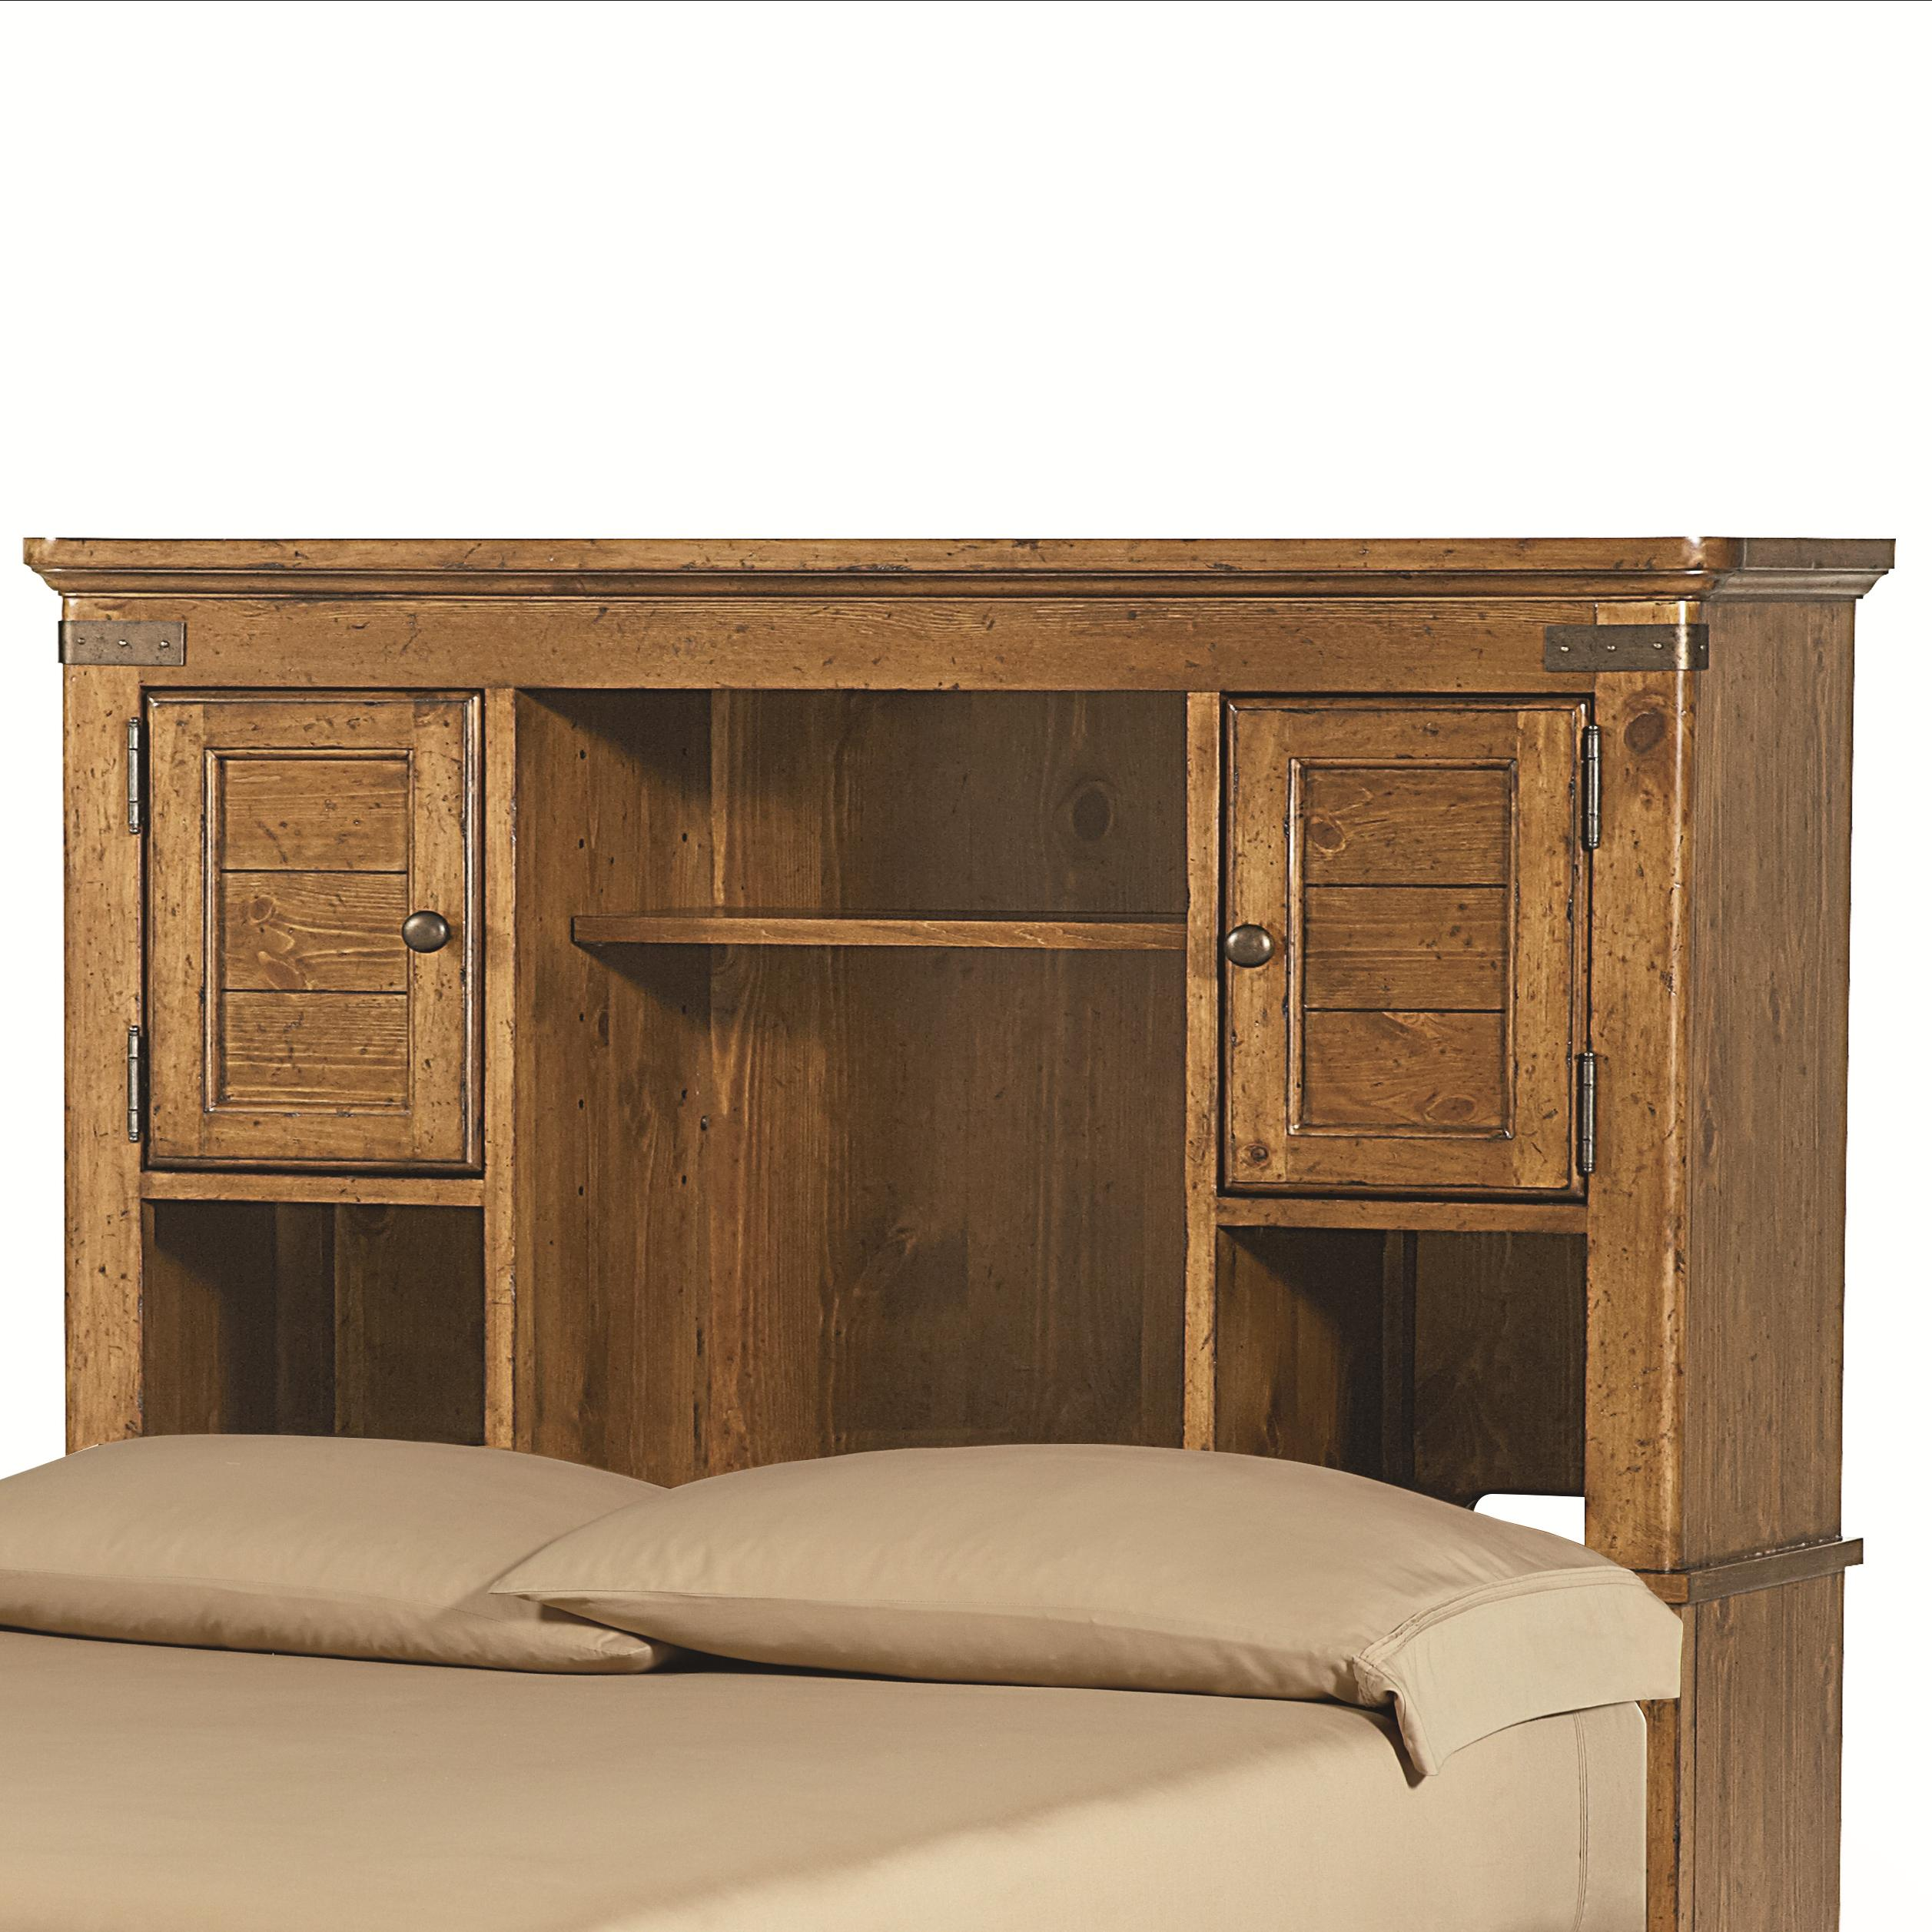 Full Bookcase Headboard with Shelves and Doors & Full Bookcase Headboard with Shelves and Doors by Legacy Classic ... pezcame.com